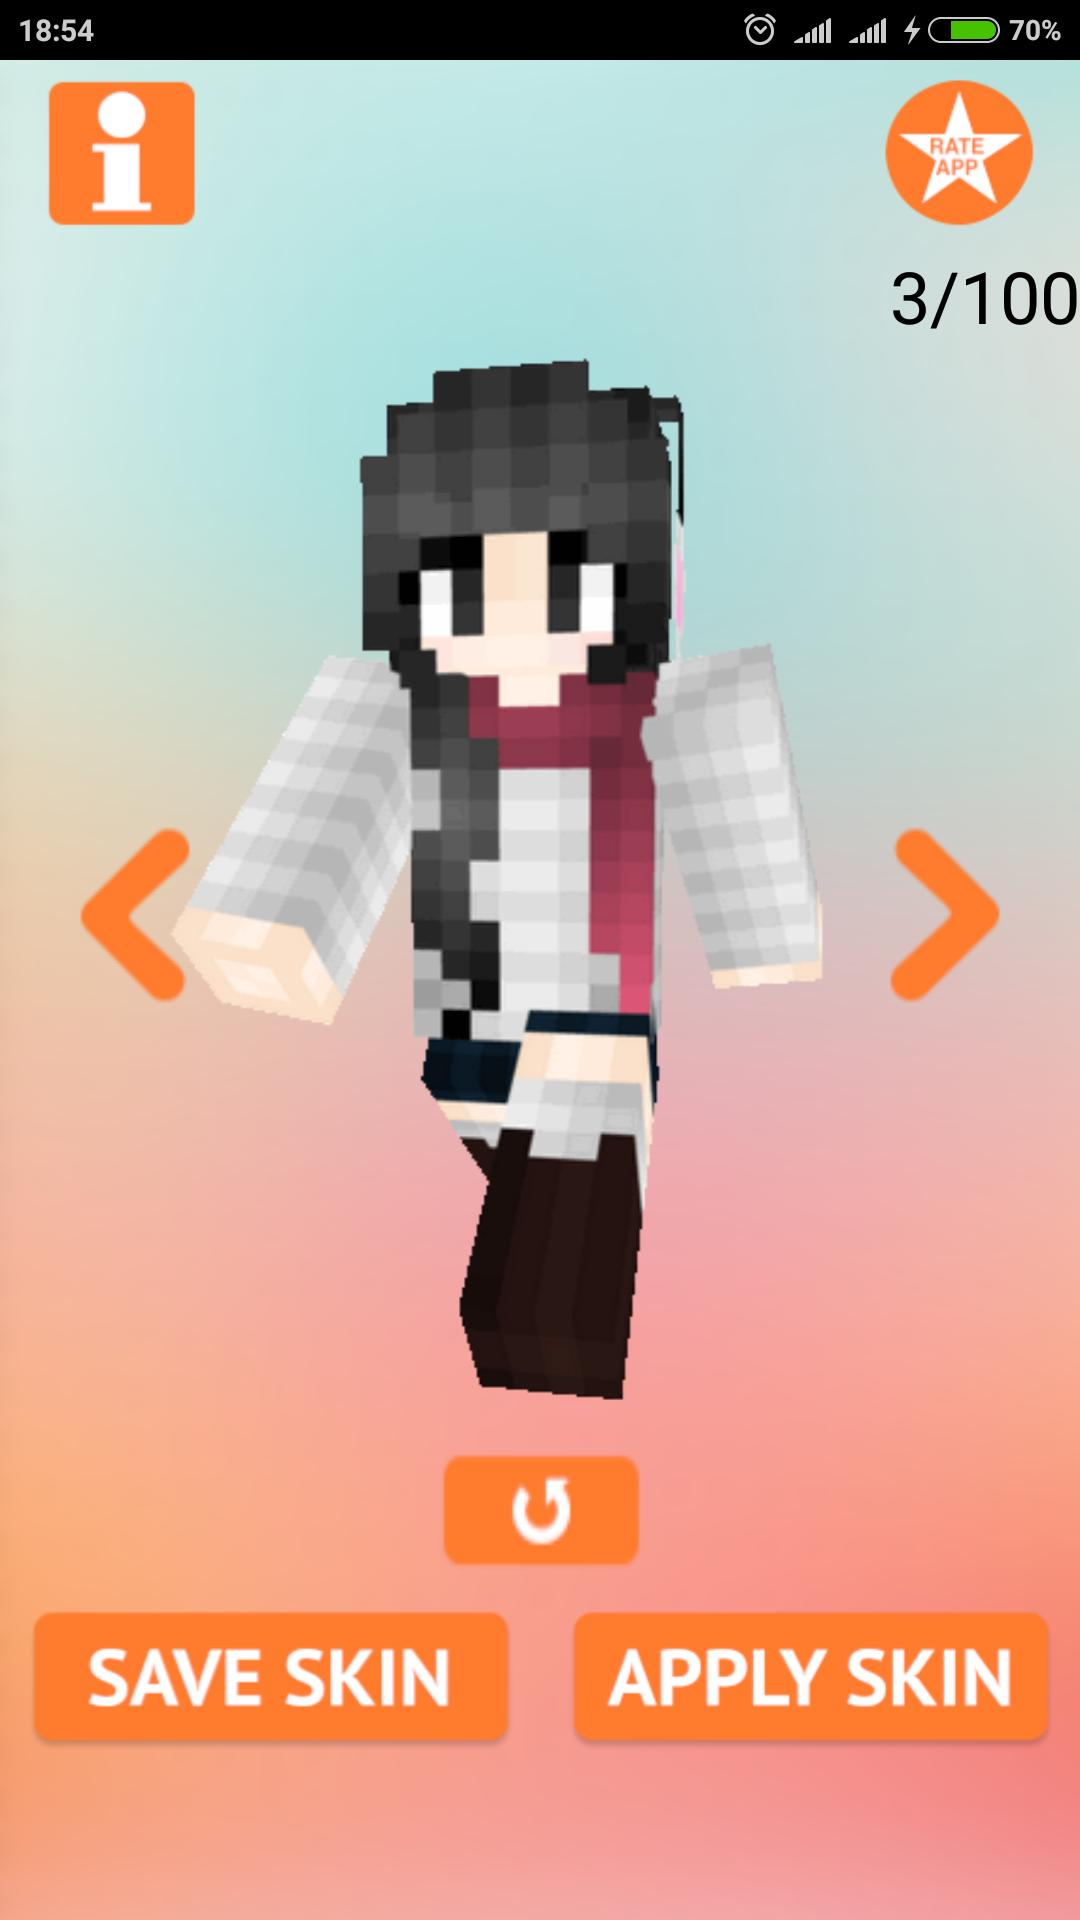 Anime Girl Skins for Minecraft for Android - APK Download